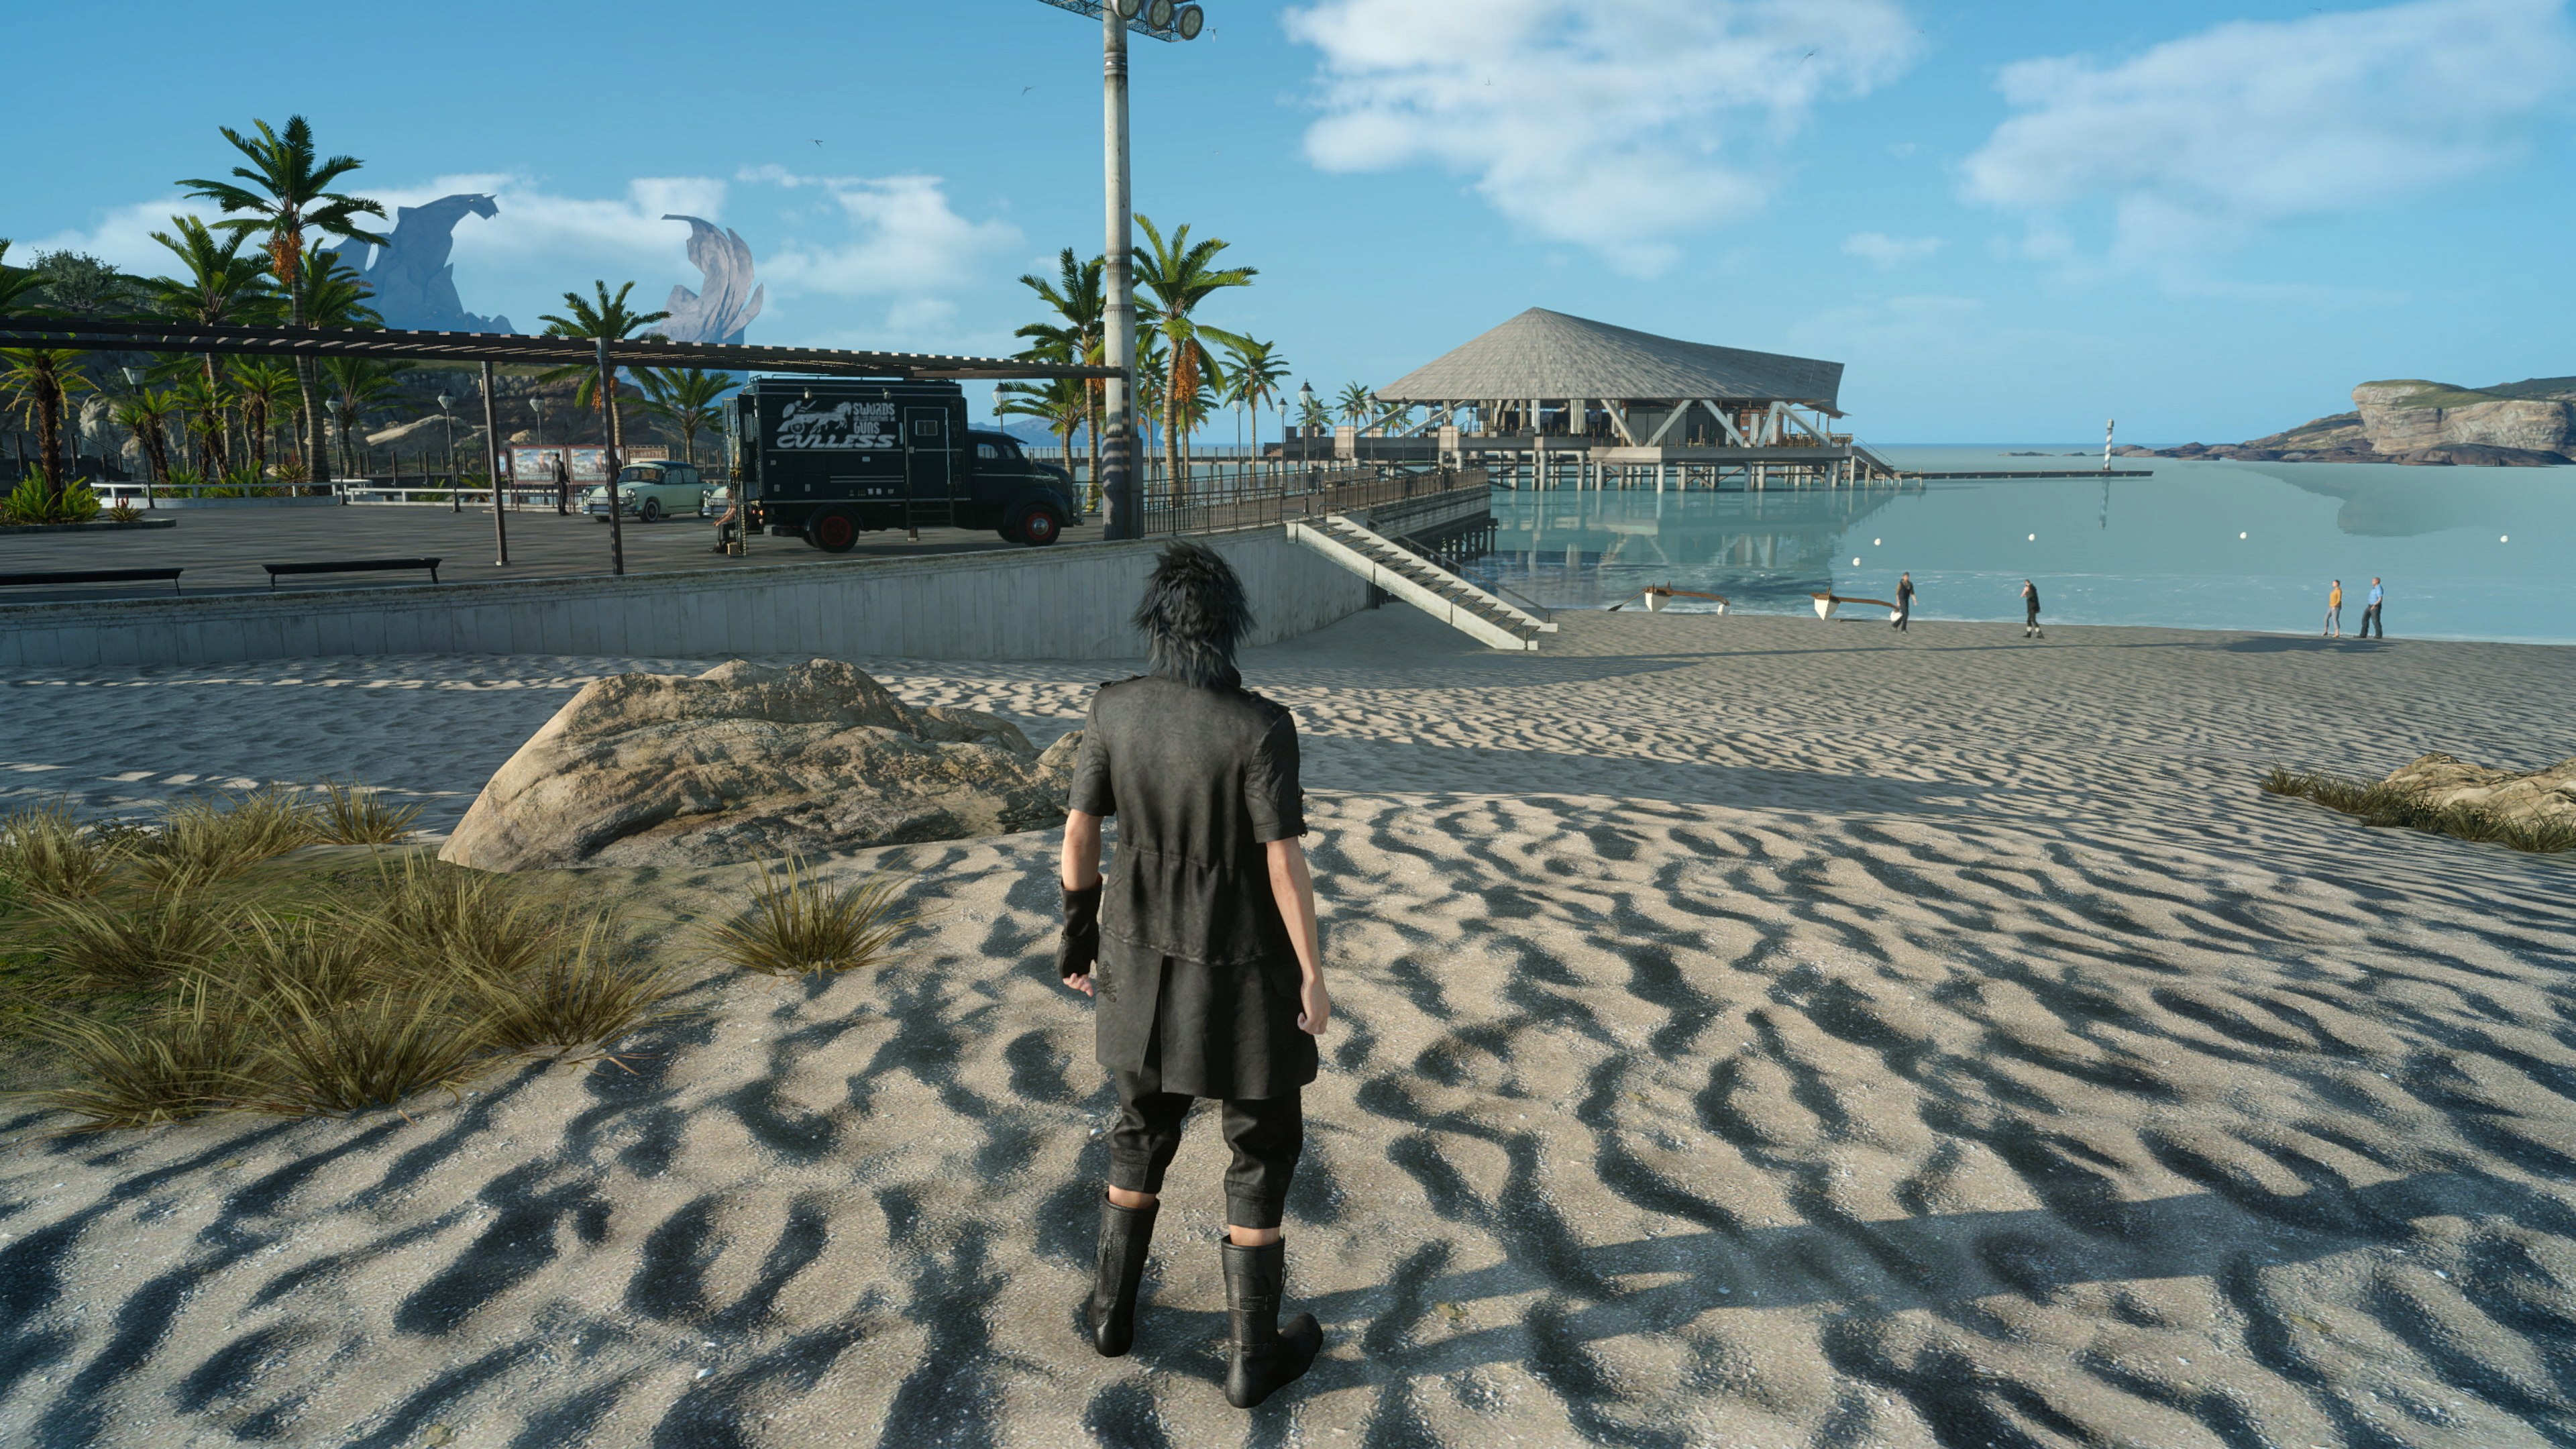 Final Fantasy 15's PC port unlocks the game's full visual potential